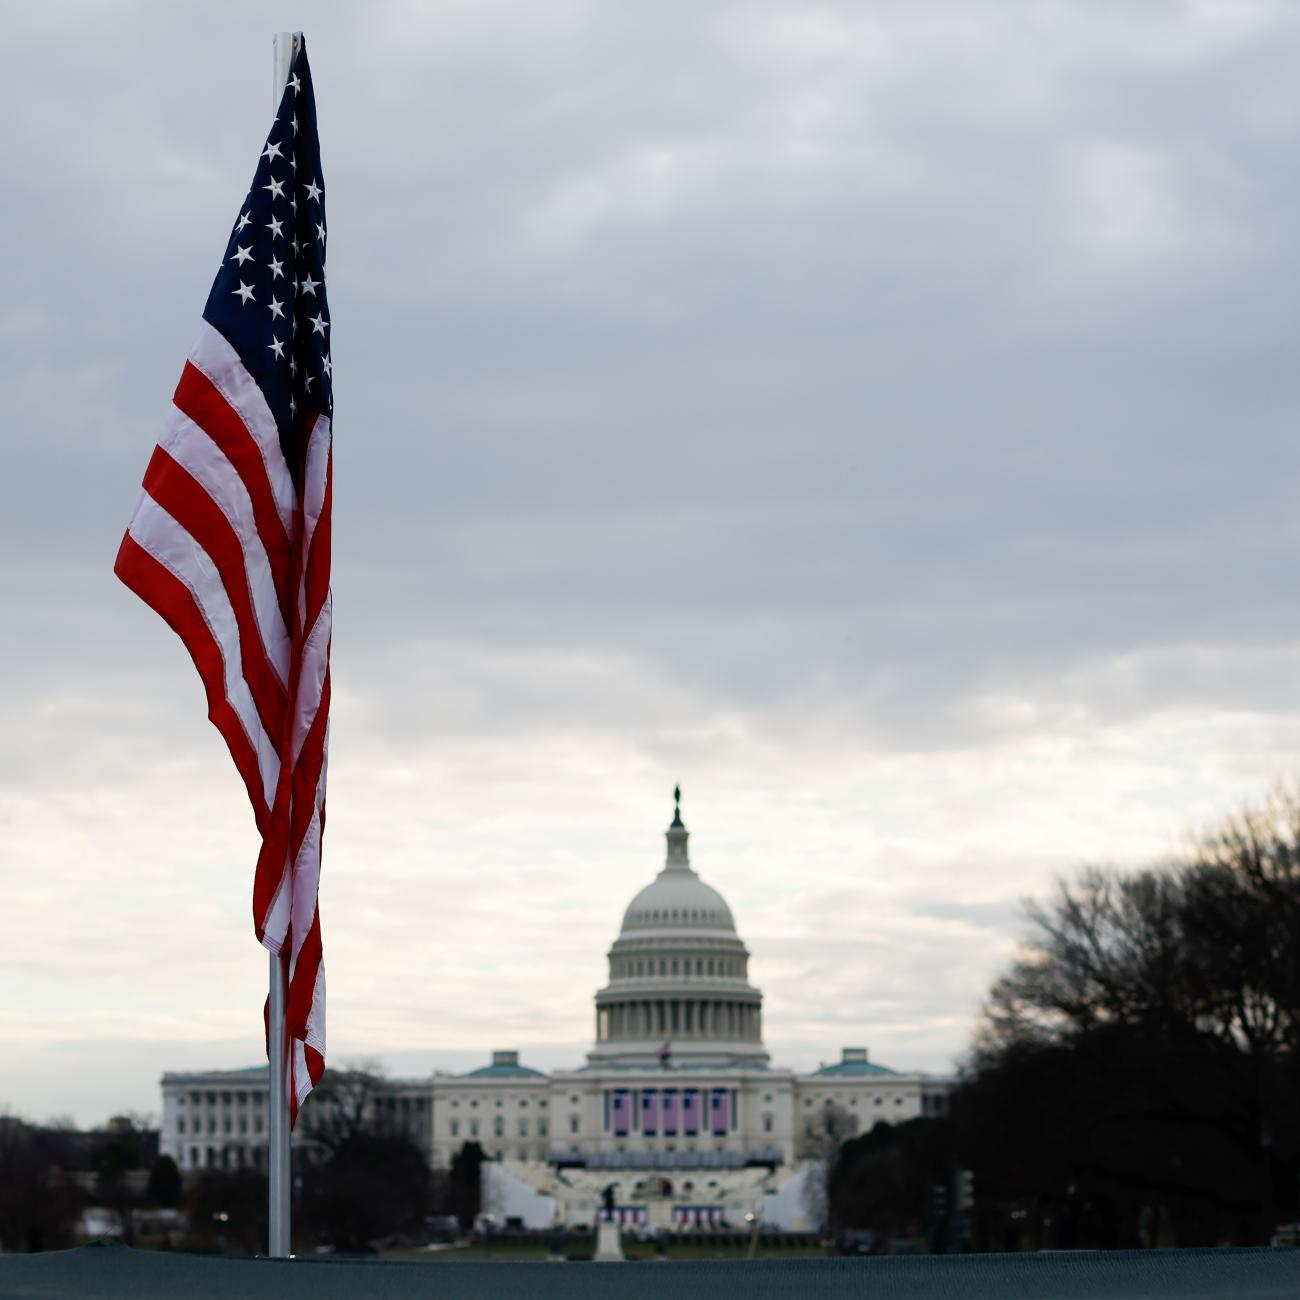 A U.S. flag is displayed at the National Mall, as part of a memorial paying tribute to the U.S. citizens who have died from the coronavirus disease in Washington, DC on January 18, 2021.